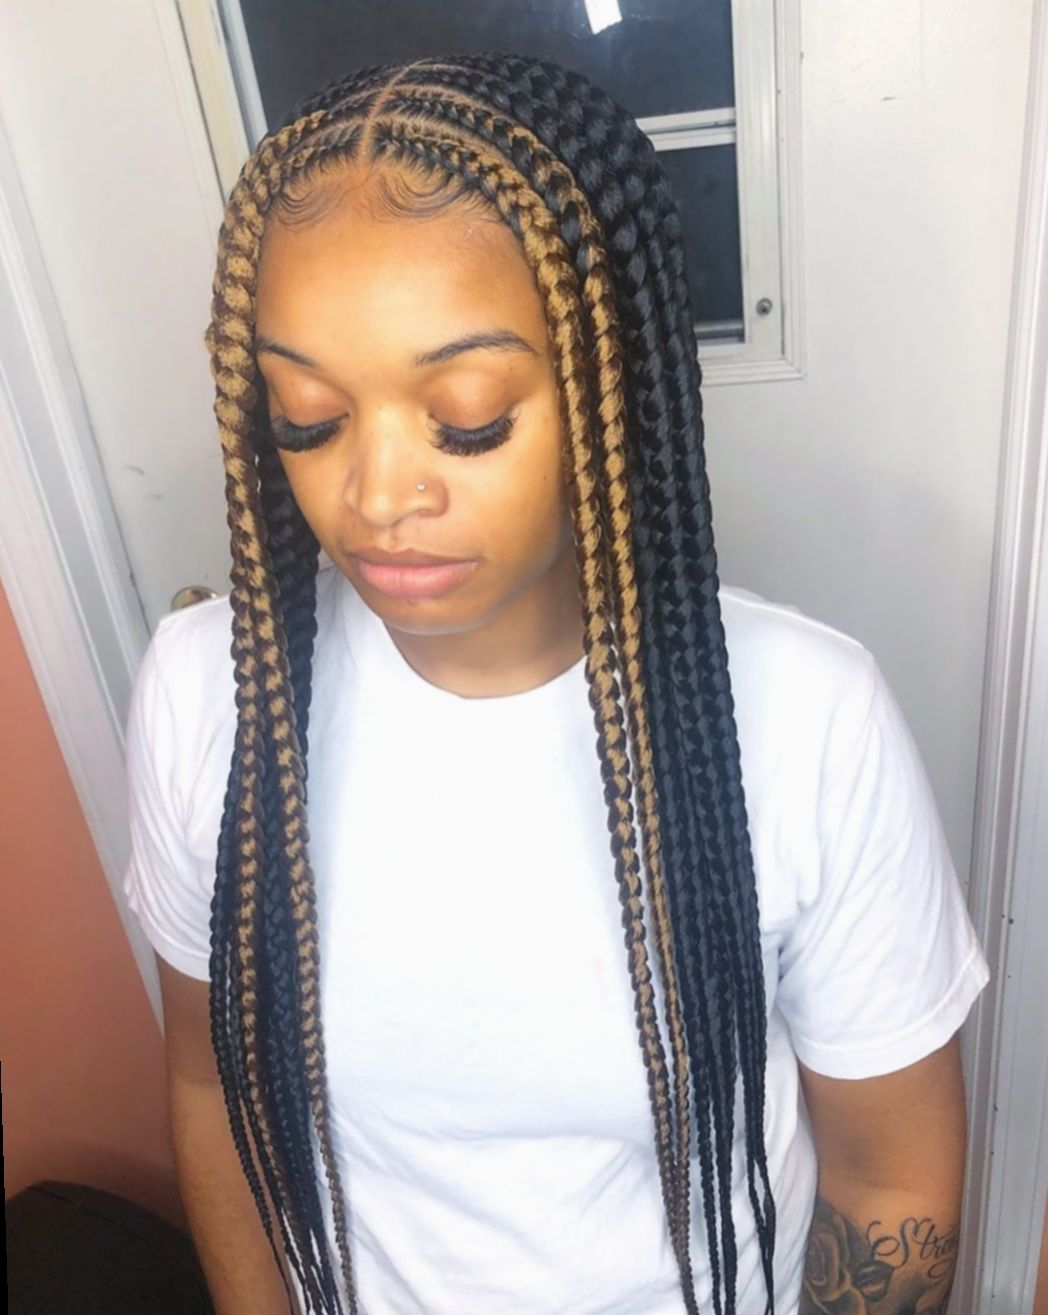 Hairstyles Braided Black Corn Rows Behindthechair Olaplex Livedinhair Braided Hairstyles Cornrow Hairstyles Girls Hairstyles Braids